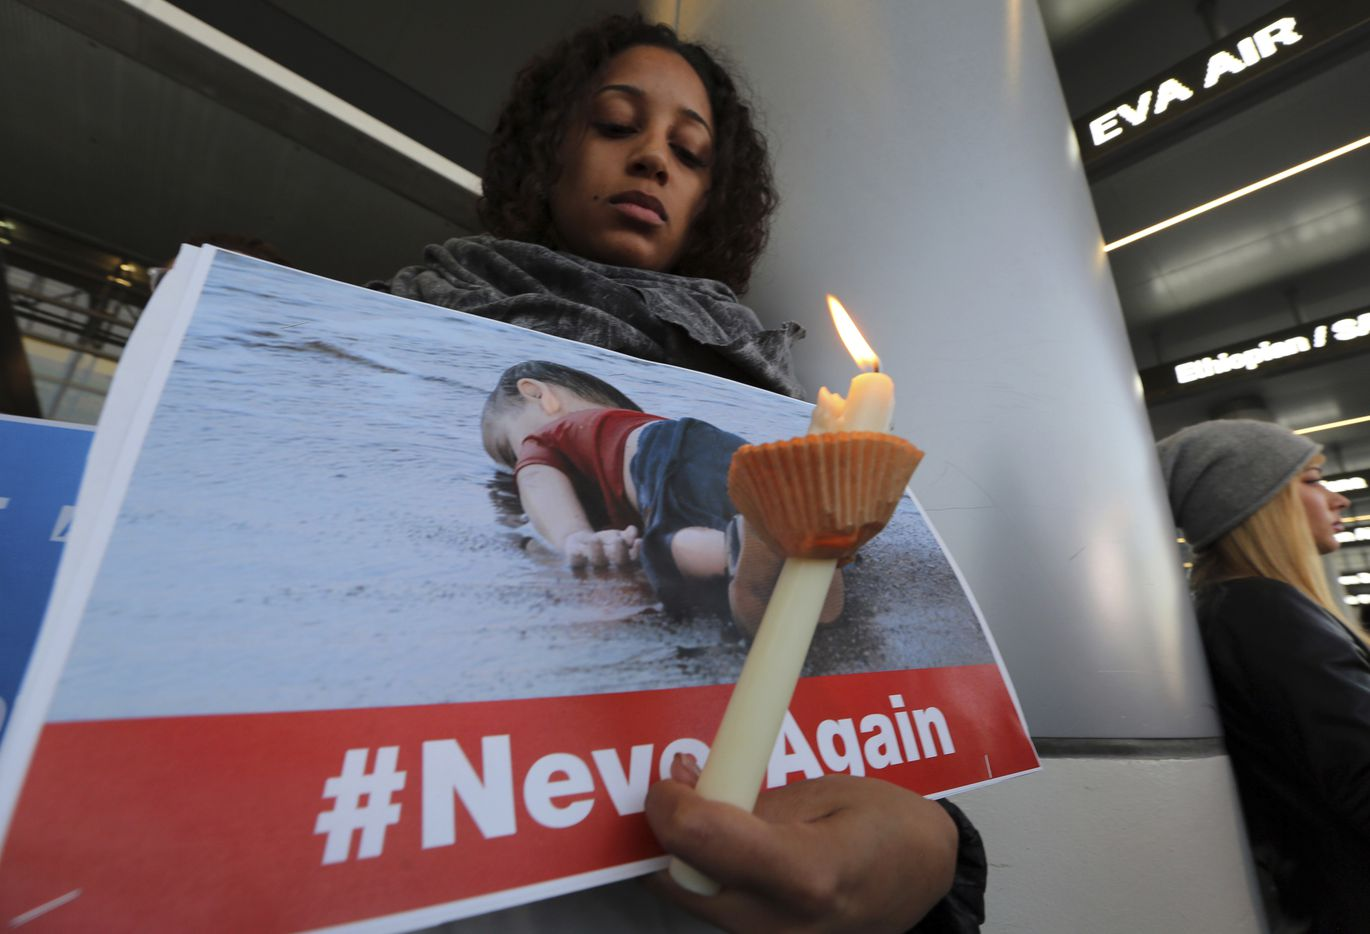 Avriel Epps of Los Angeles joins holds a well known photo of a refugee child who drowned as he was fleeing a war torn country, as hundreds of demonstrators opposed to President Donald Trump's executive order barring entry to the U.S. of seven predominantly Muslim countries at the Tom Bradley International Terminal at Los Angeles International Airport Saturday, Jan. 28, 2017.